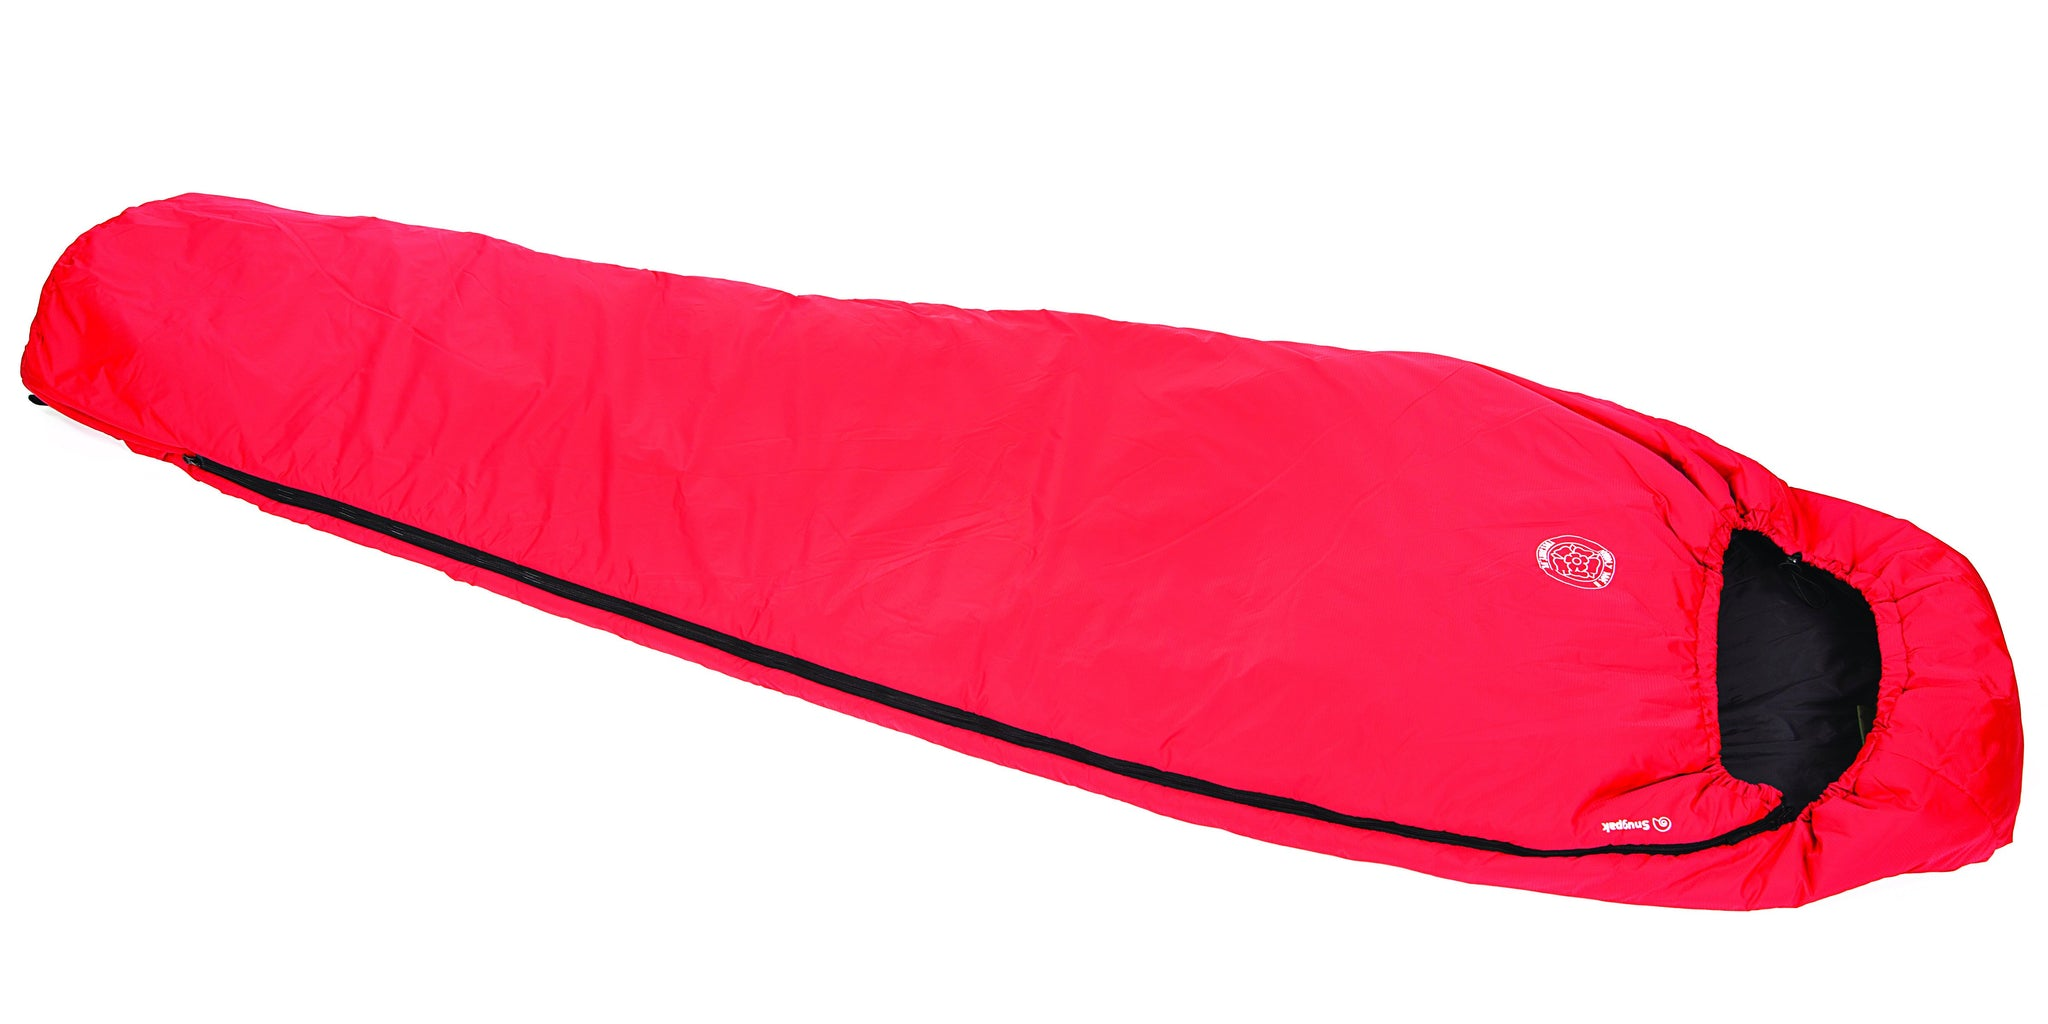 Softie 3 Solstice Sleeping Bag - Texas Adventure and Survival